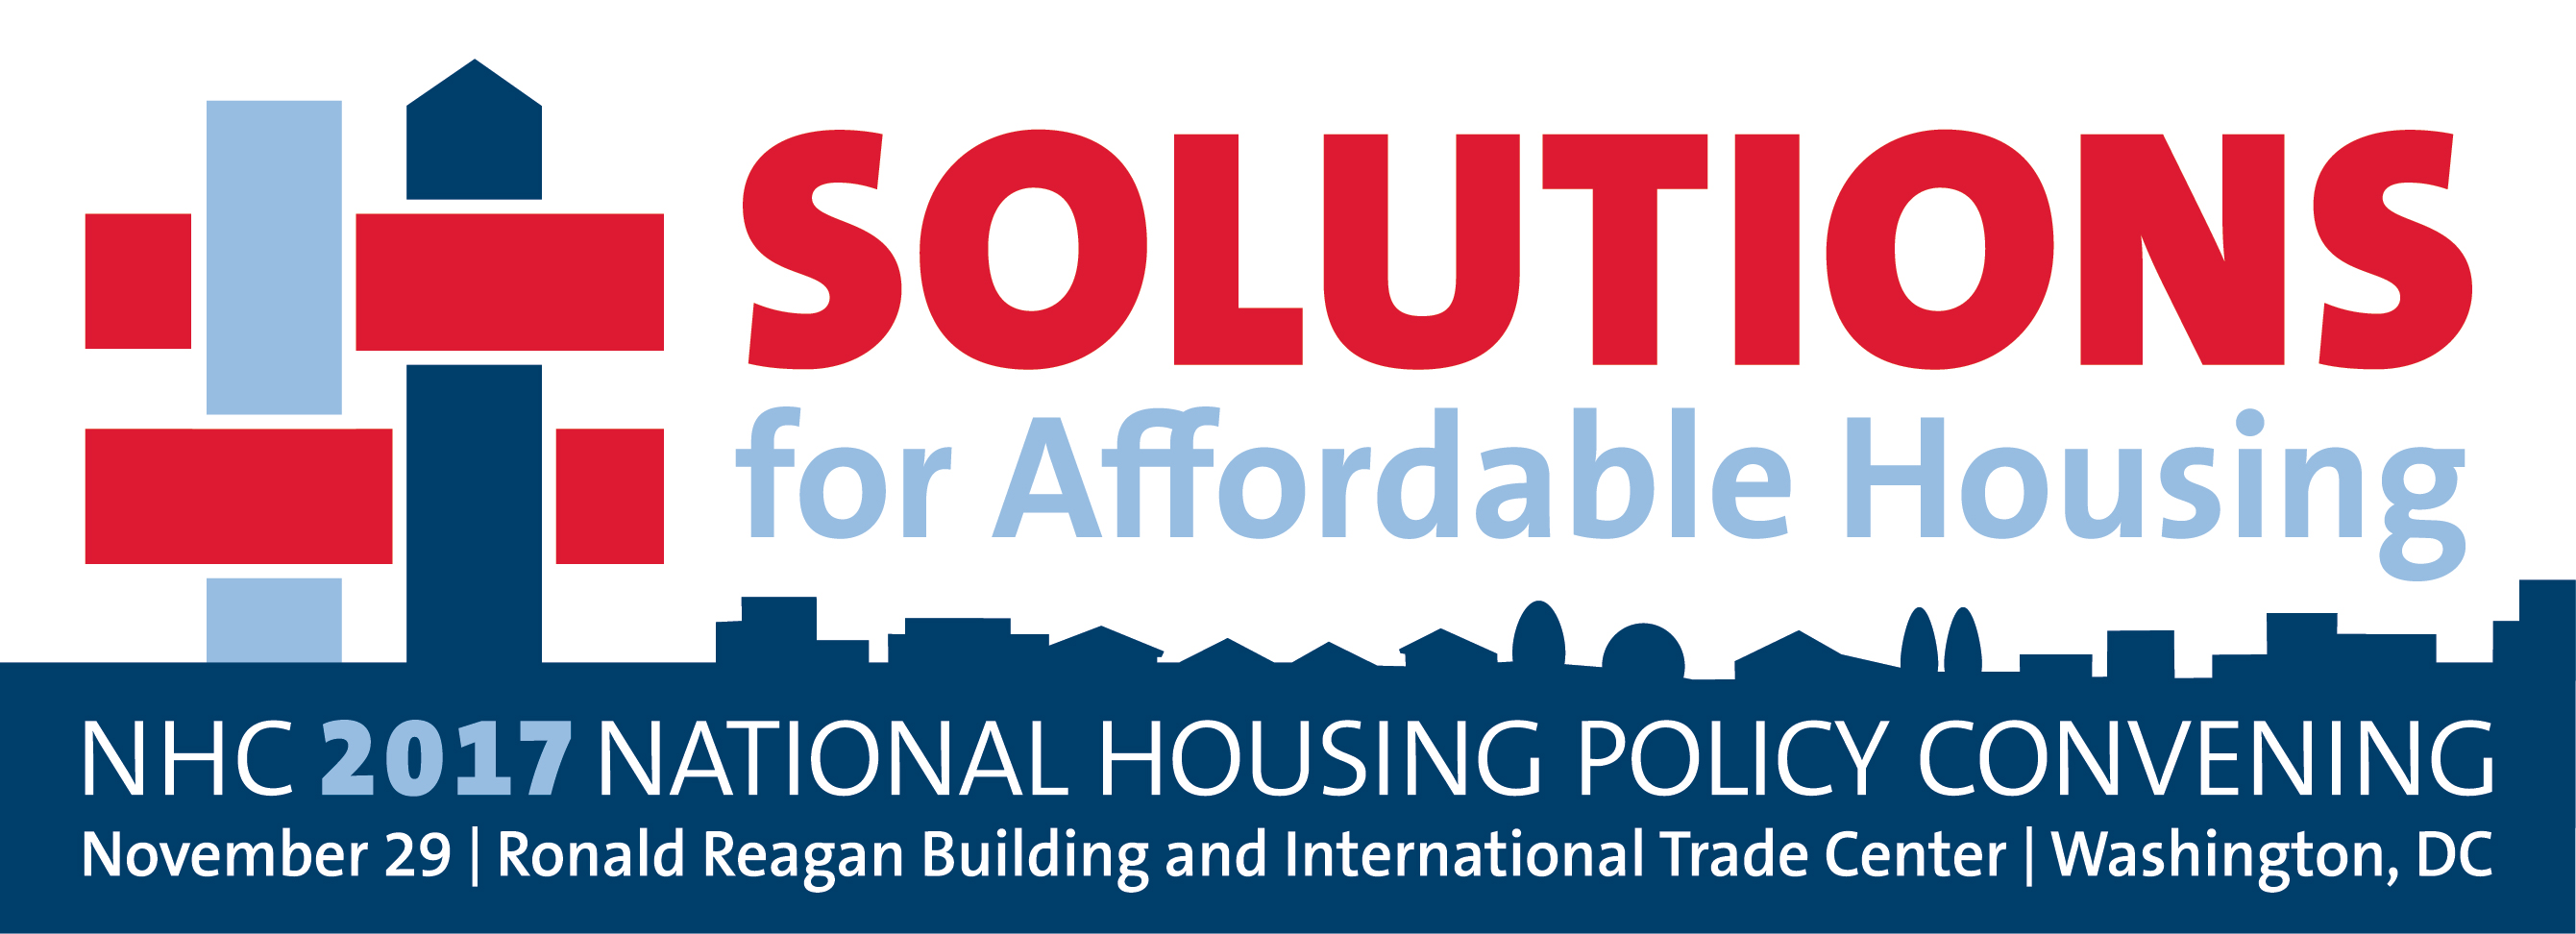 Solutions for  Affordable Housing 2017- NHC's National Housing Policy Convening